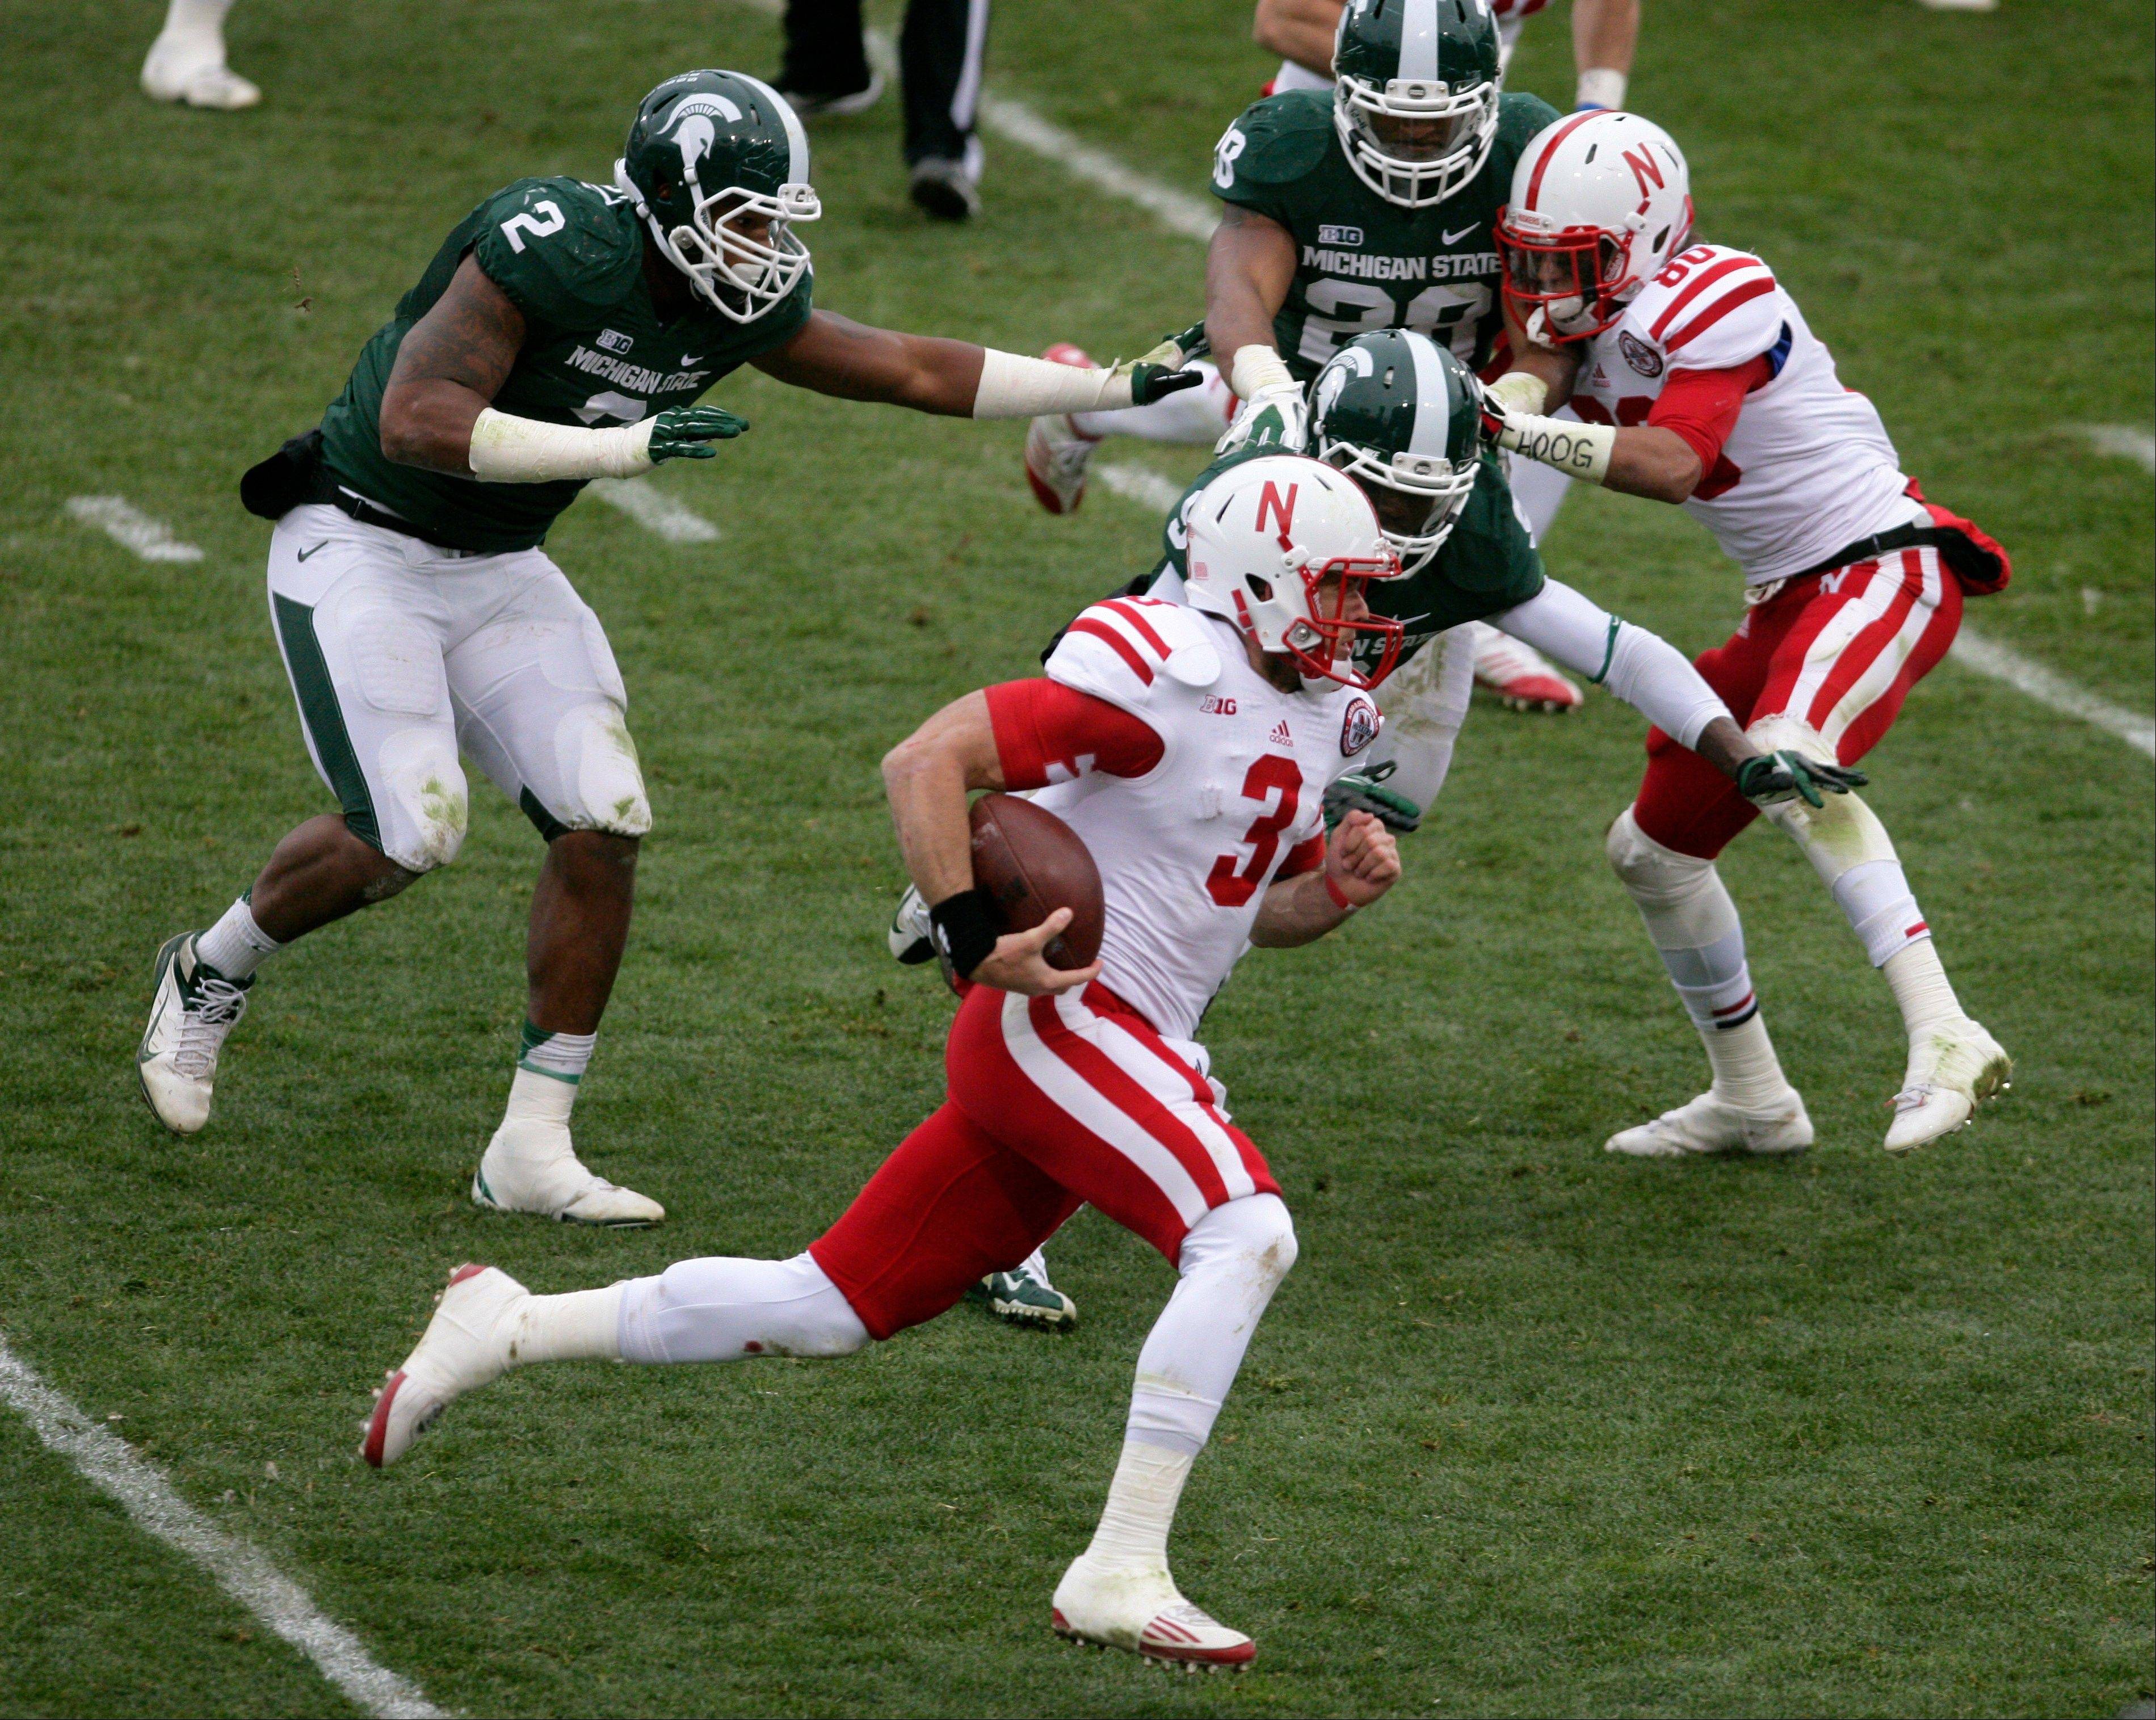 Nebraska quarterback Taylor Martinez gets past Michigan State's William Gholston (2), Isaiah Lewis, center, and Denicos Allen (28) Satuday for a 71-yard touchdown as Nebraska's Kenny Bell, right, blocks during the second quarter in East Lansing, Mich.